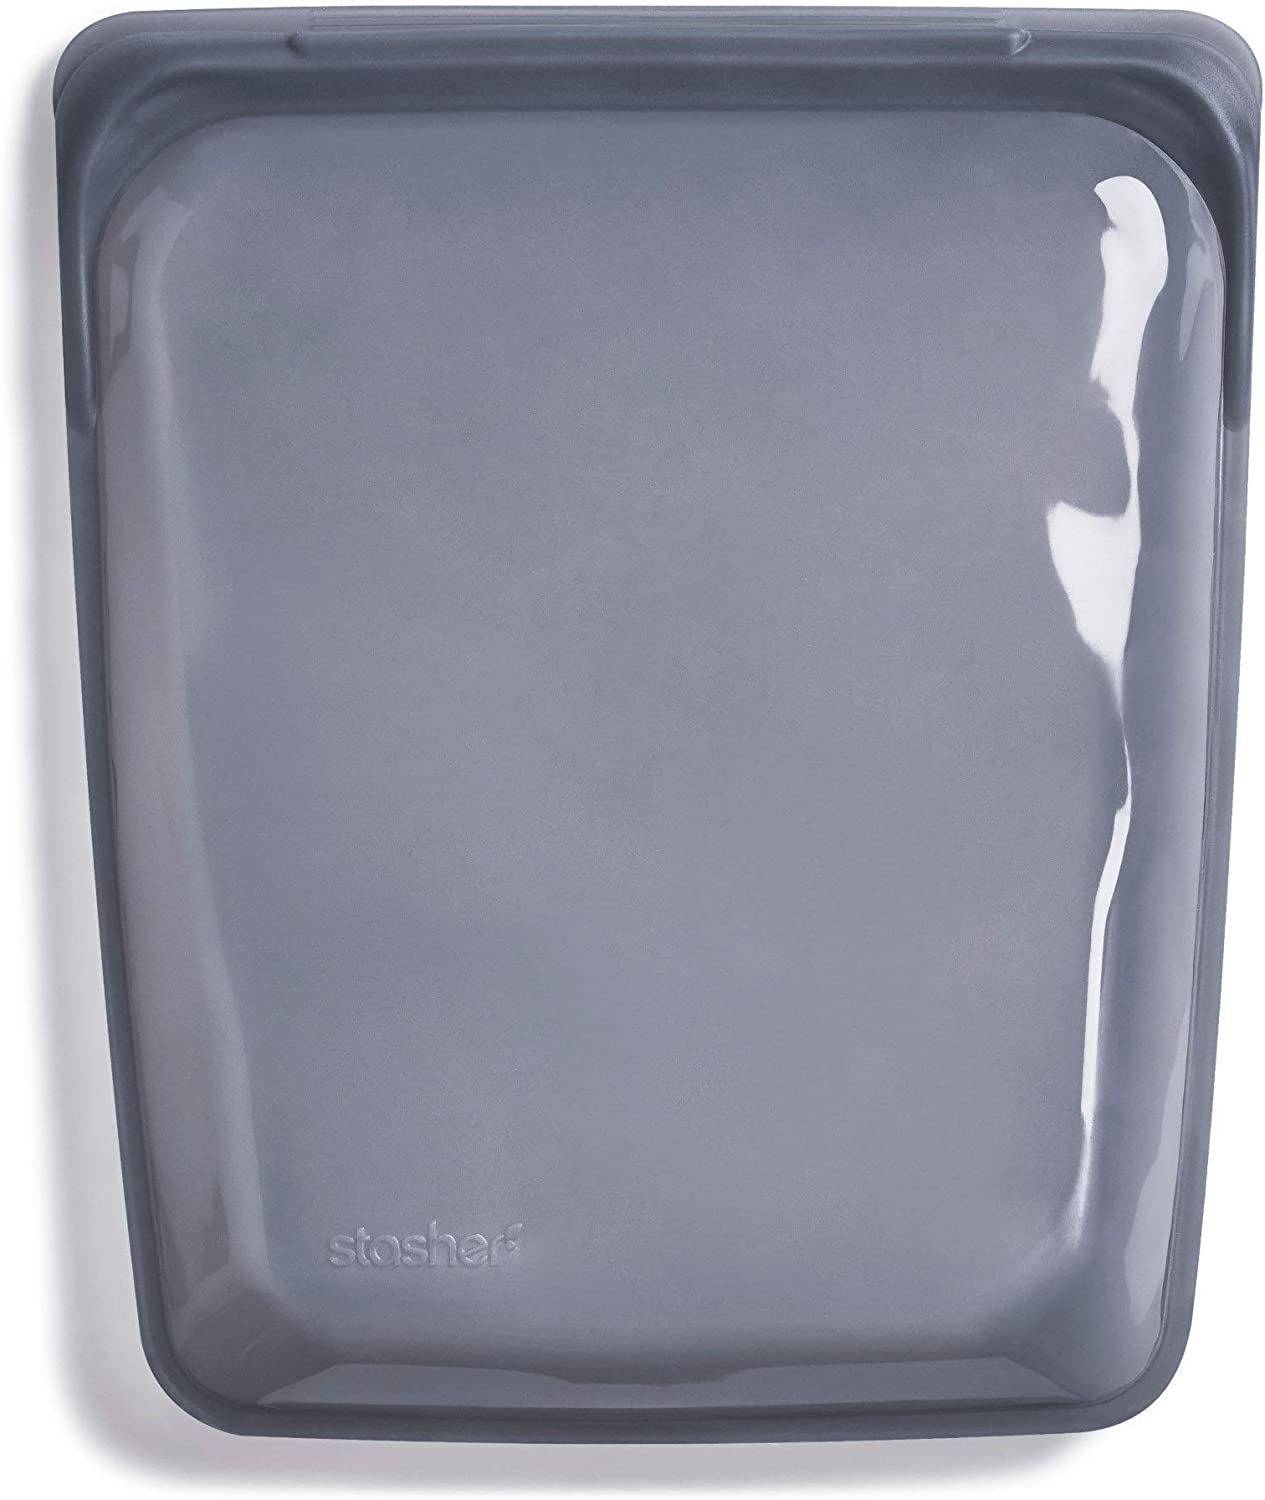 Stasher Re-Usable Food-Grade Platinum Silicone Half Gallon Bag for Eating from/Cooking, Freezing and Storing in/Sous Vide/Organising/Travelling, 26.05 cm x 20.95 cm, Ash